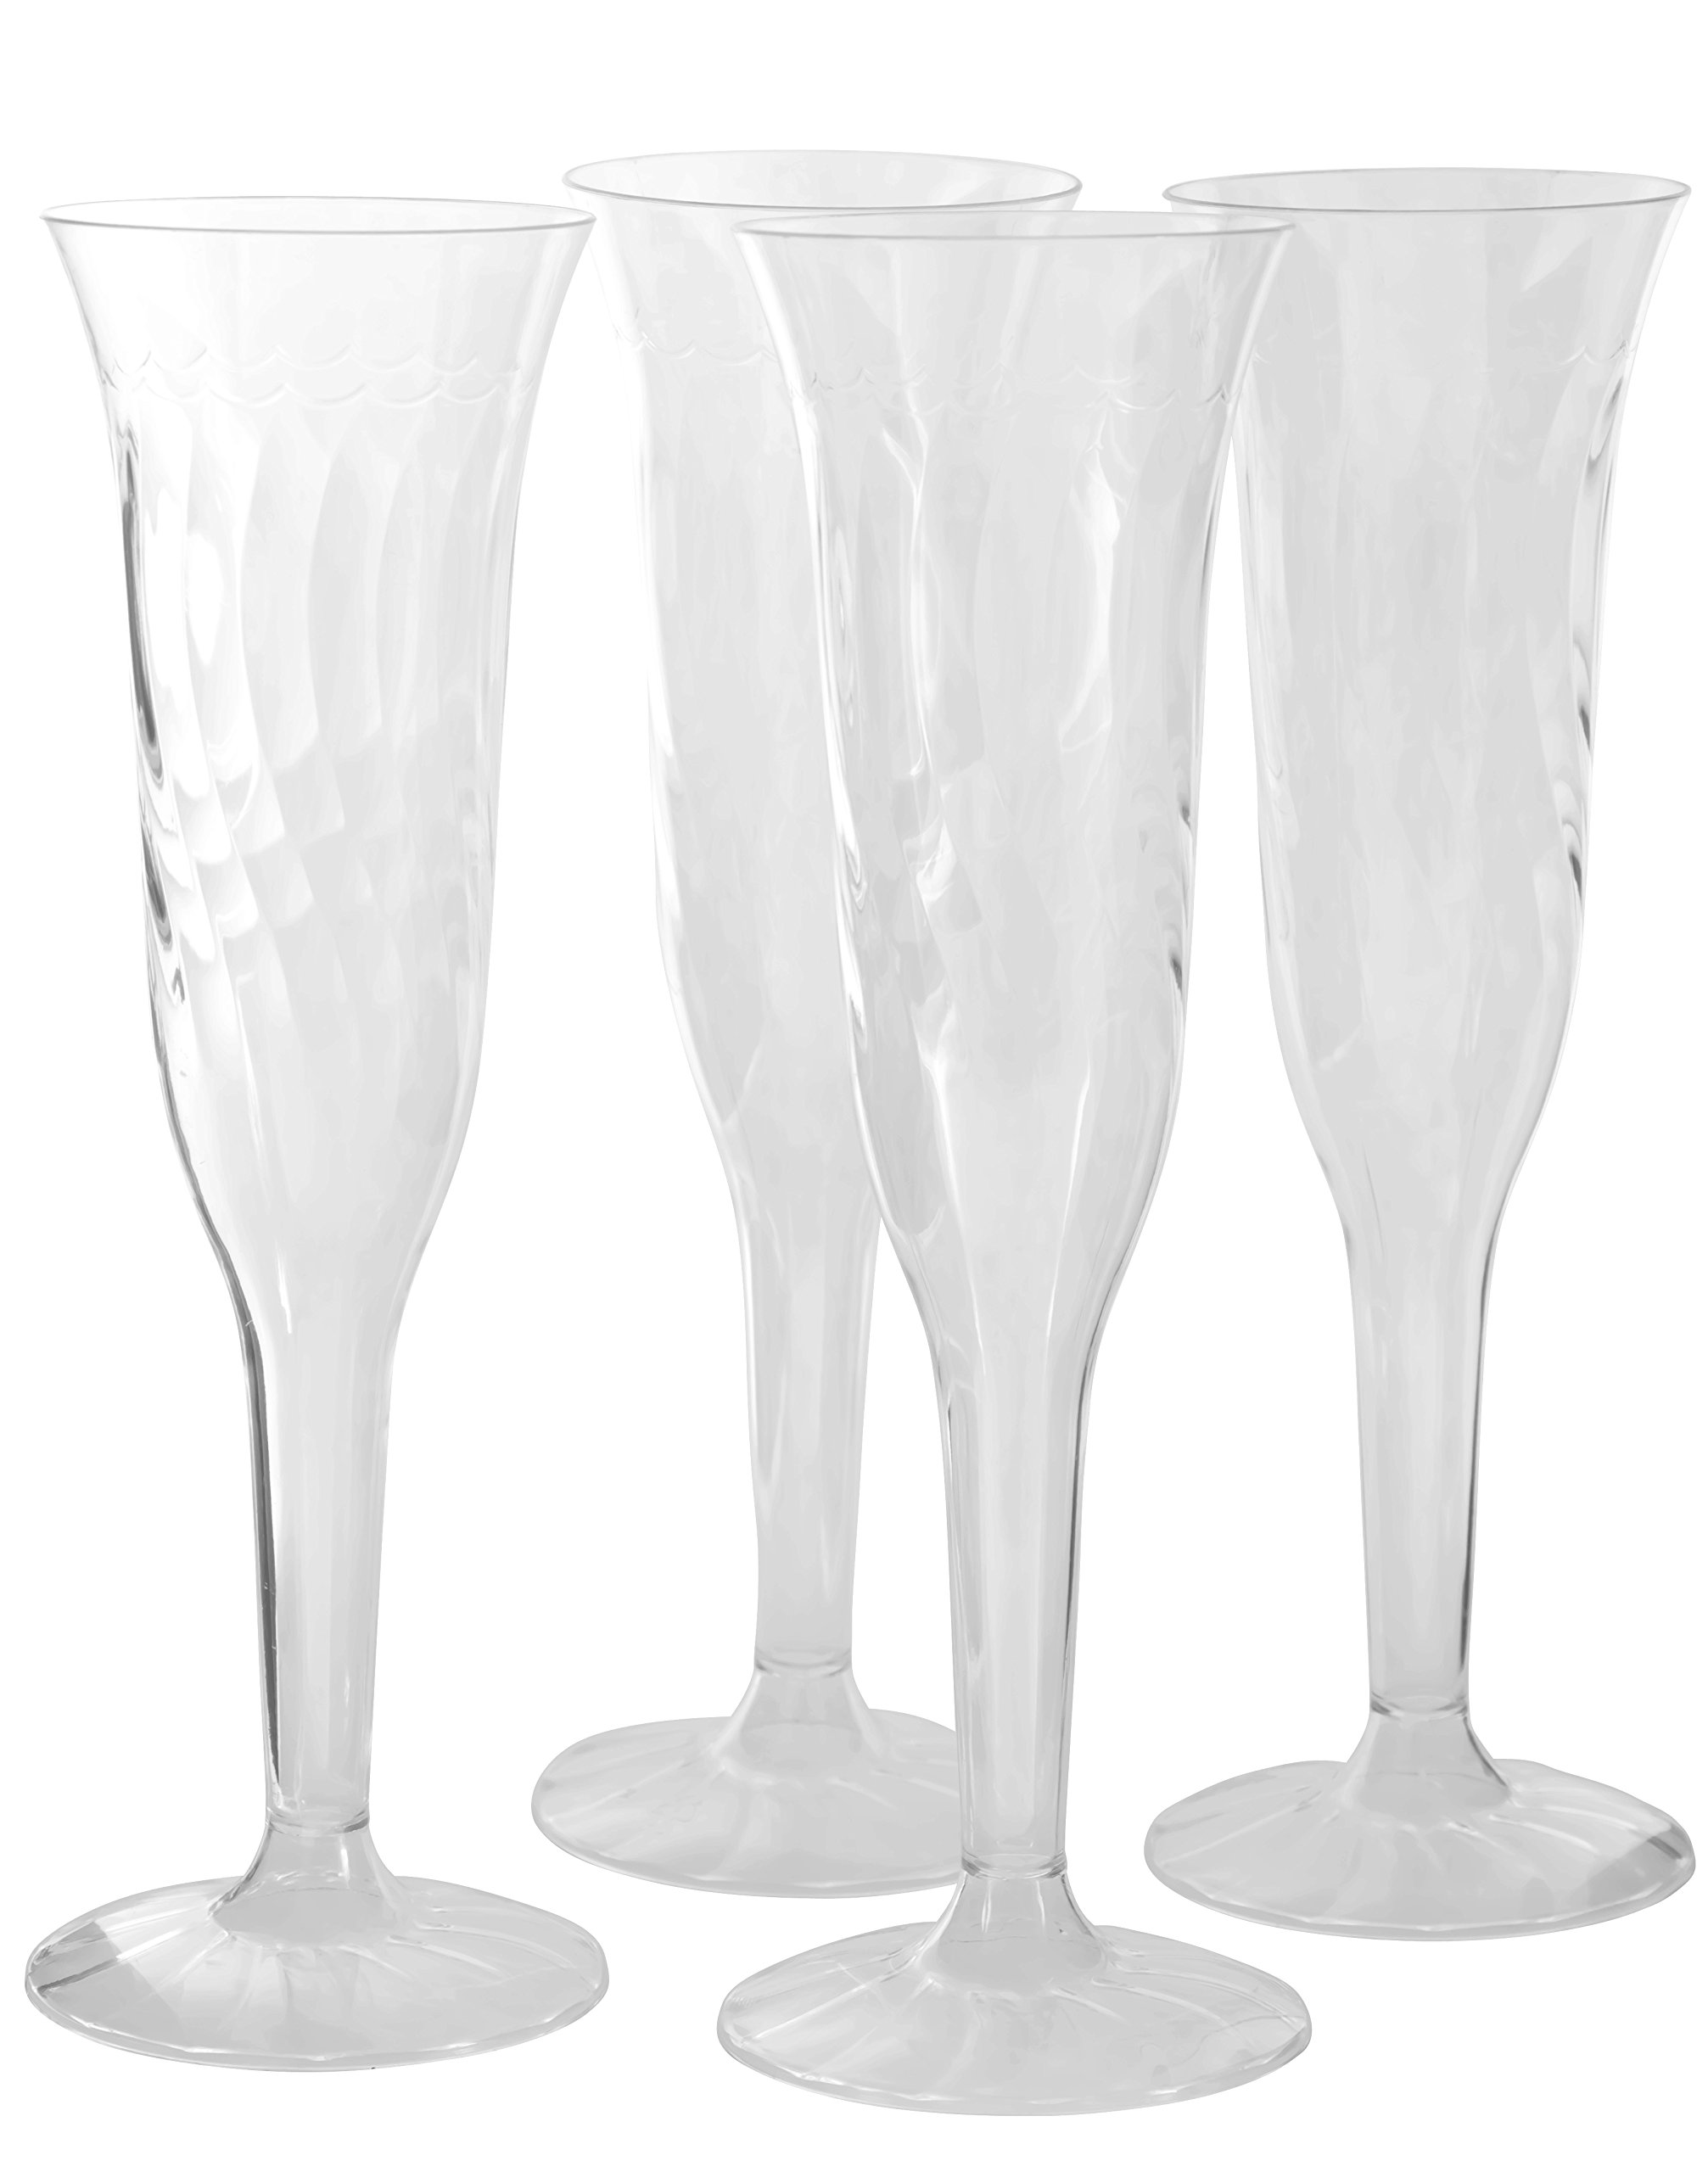 Plastic Champagne Flutes - 96 Pcs Fancy Crystal-Like 5.5oz Disposable Hard Plastic Clear Champagne Glasses - Bulk Party Supplies Cocktail Drinking Glass for Wedding, Birthday Parties & Other Occasions by Kaya Collection